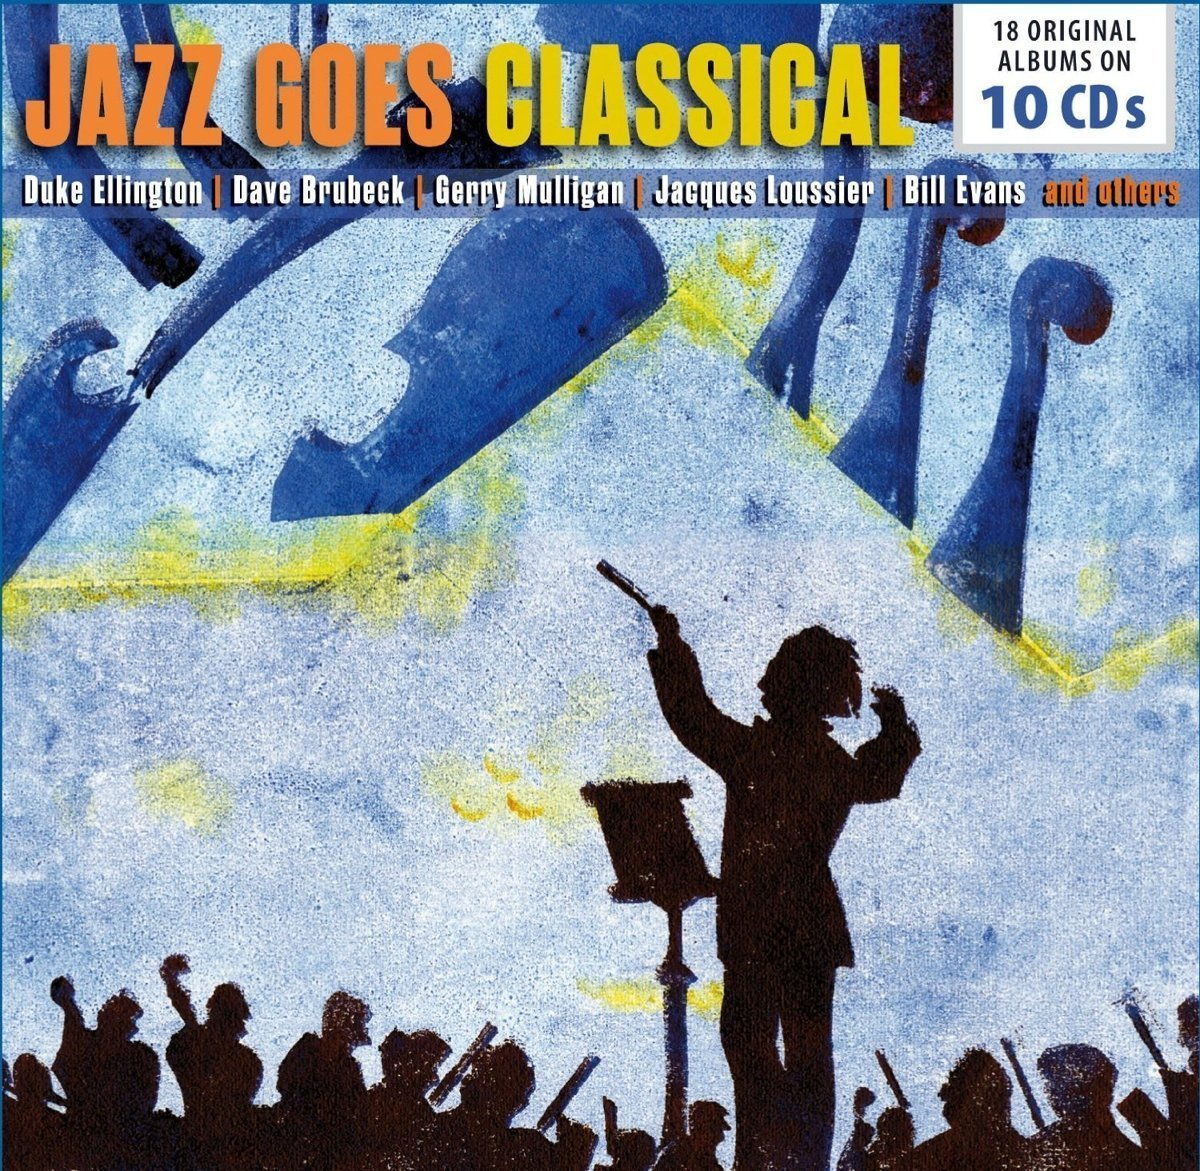 JAZZ GOES CLASSICAL 18 ORIGINAL ALBUMS (10 CDS) - ELLINGTON, BRUBECK, MULLIGAN, LOUSSIER, EVANS